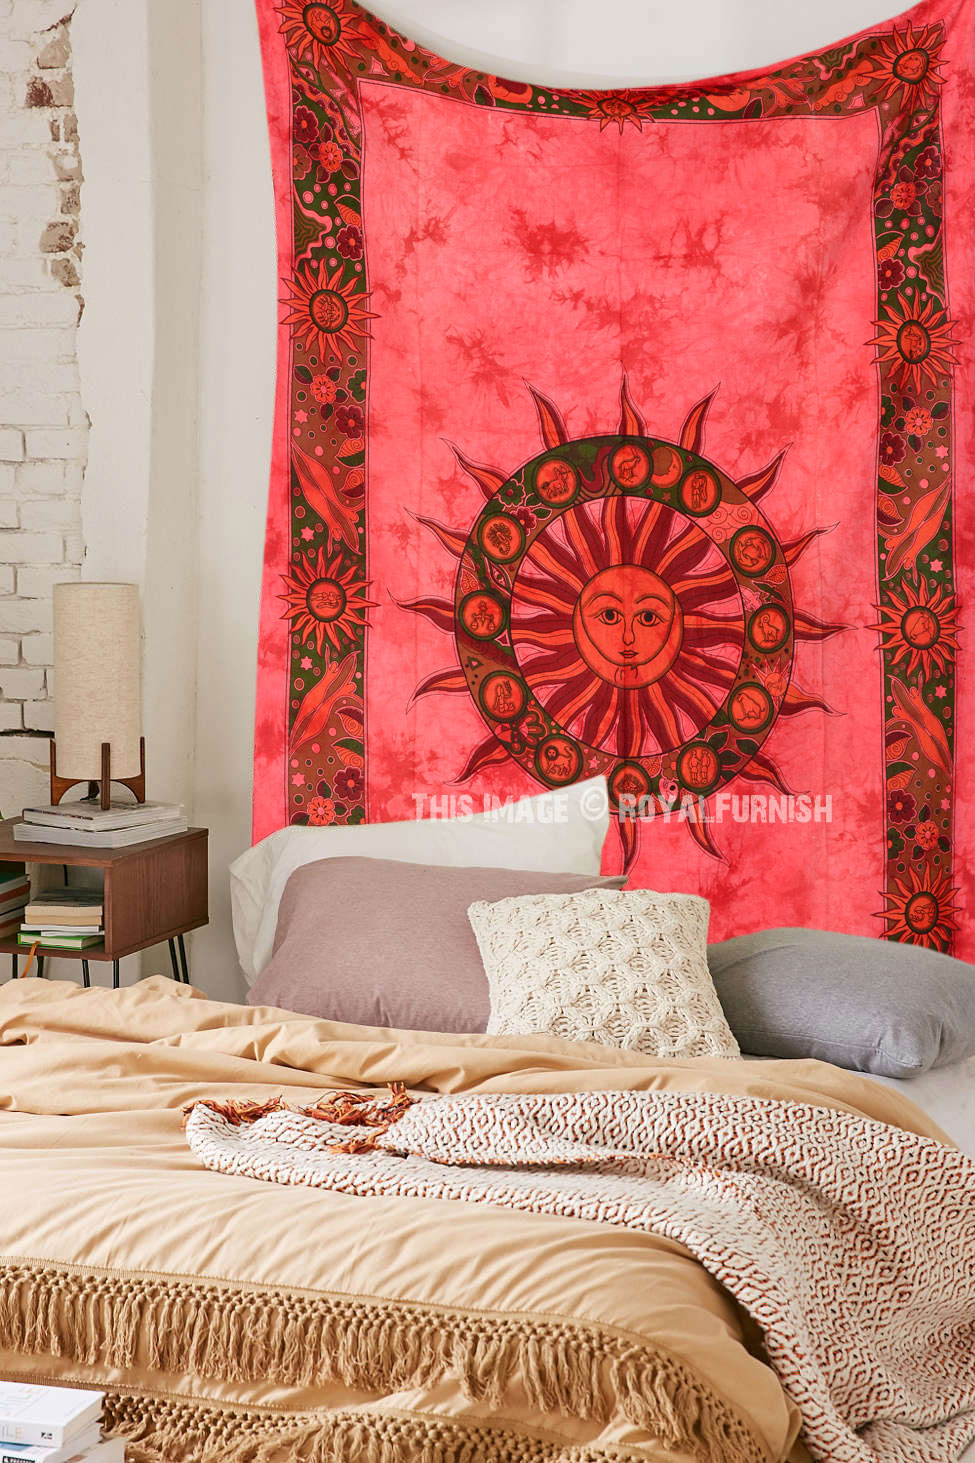 Small Red Celestial Sun Tapestry Hippie Tie Dye Tapestry